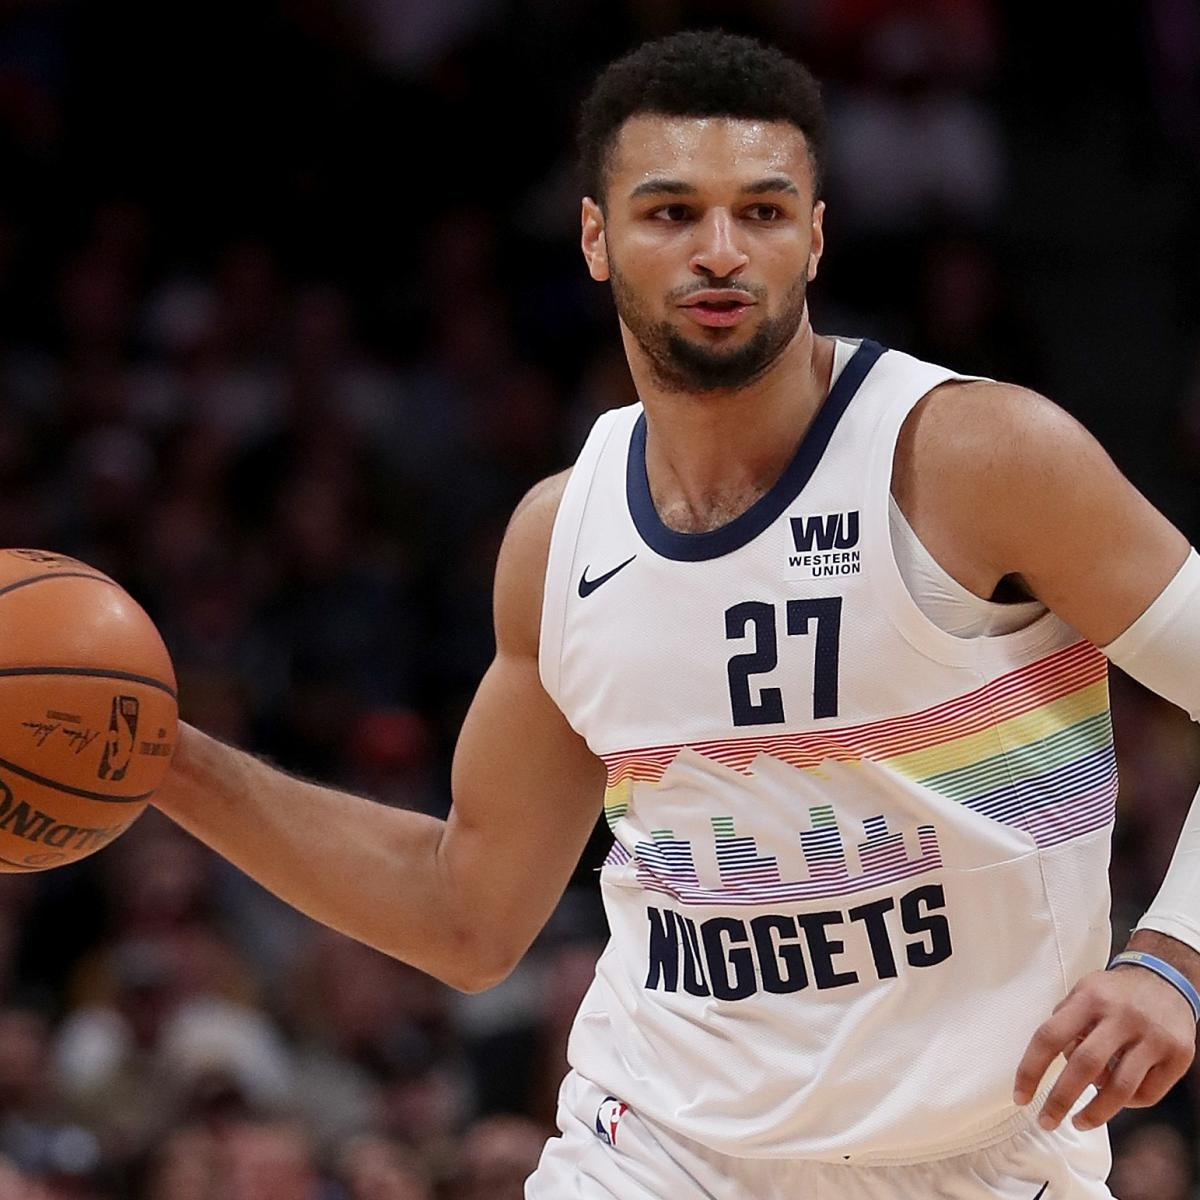 Denver Nuggets Quinteto: Denver Nuggets Vs. Utah Jazz Odds, Analysis, NBA Betting